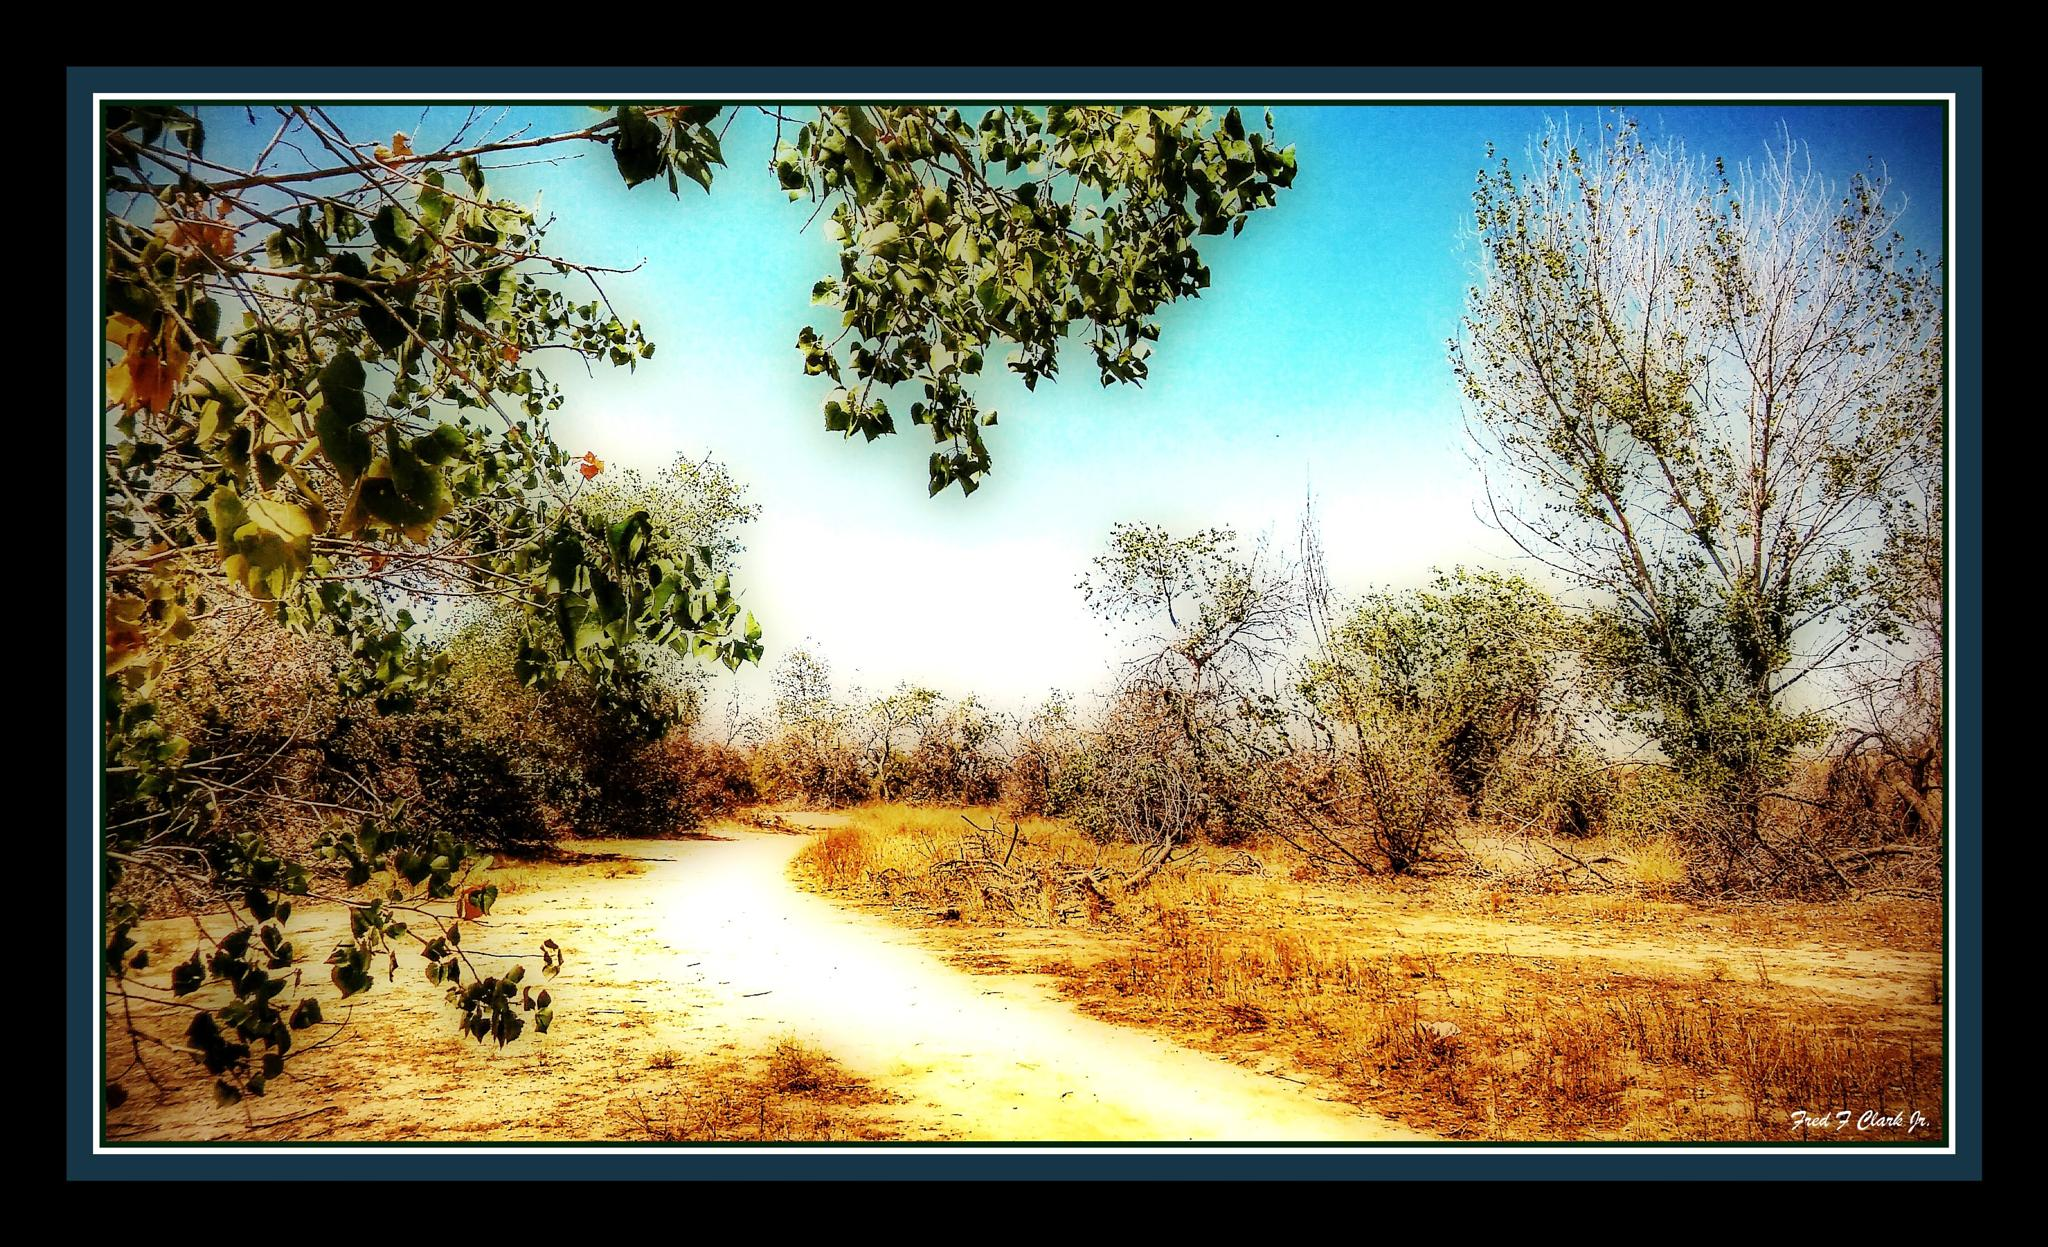 Kern River Trail by fred.clark.359